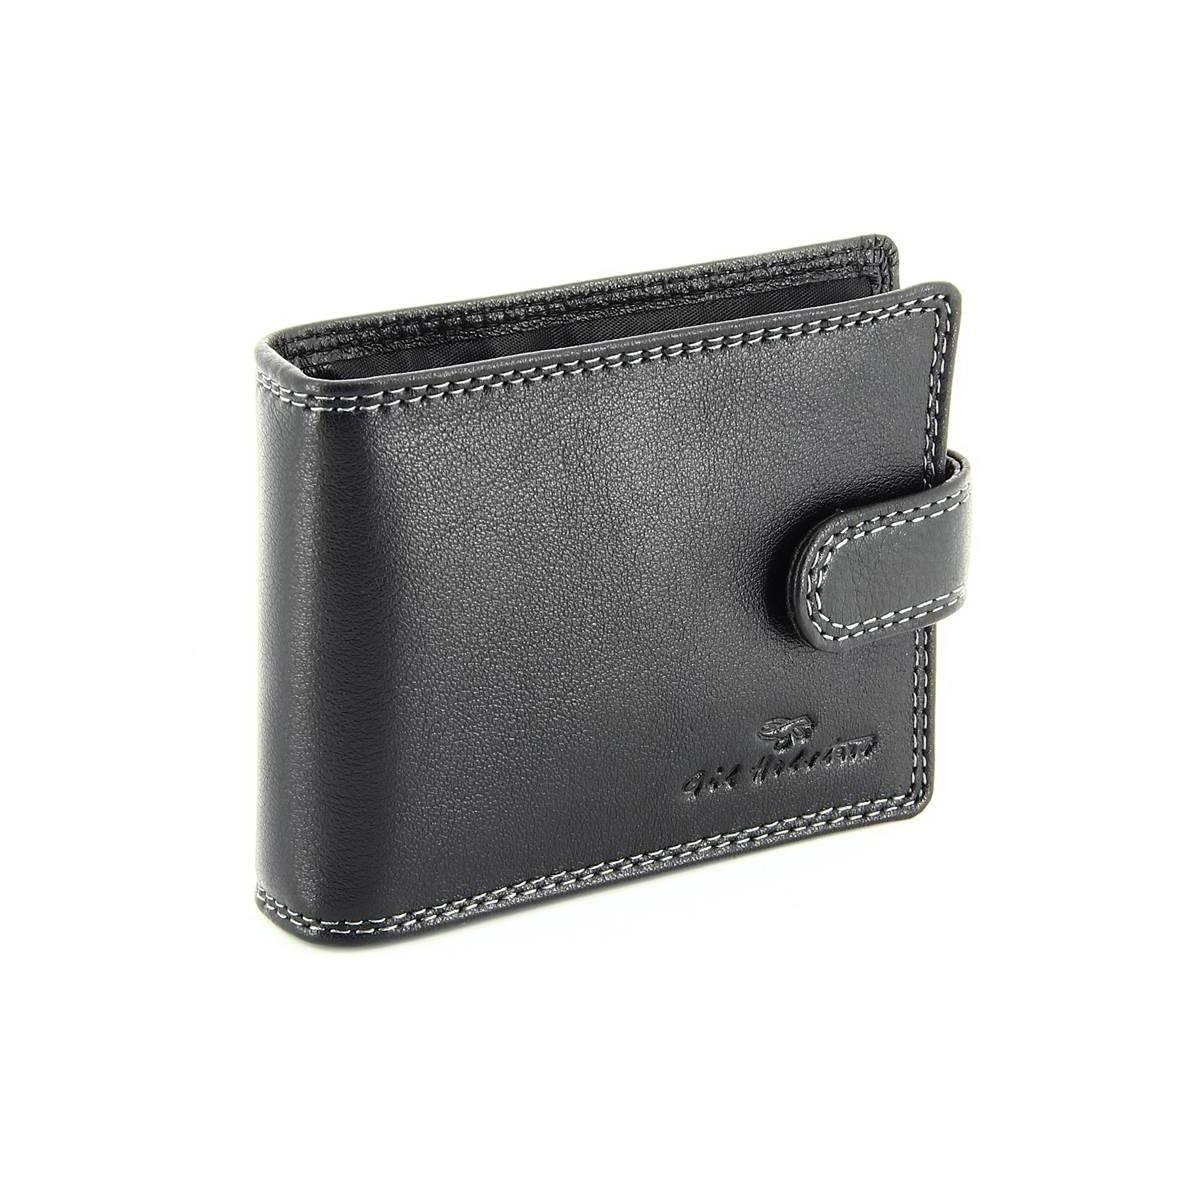 Gil holsters porte cartes homme g227505 for Porte carte homme